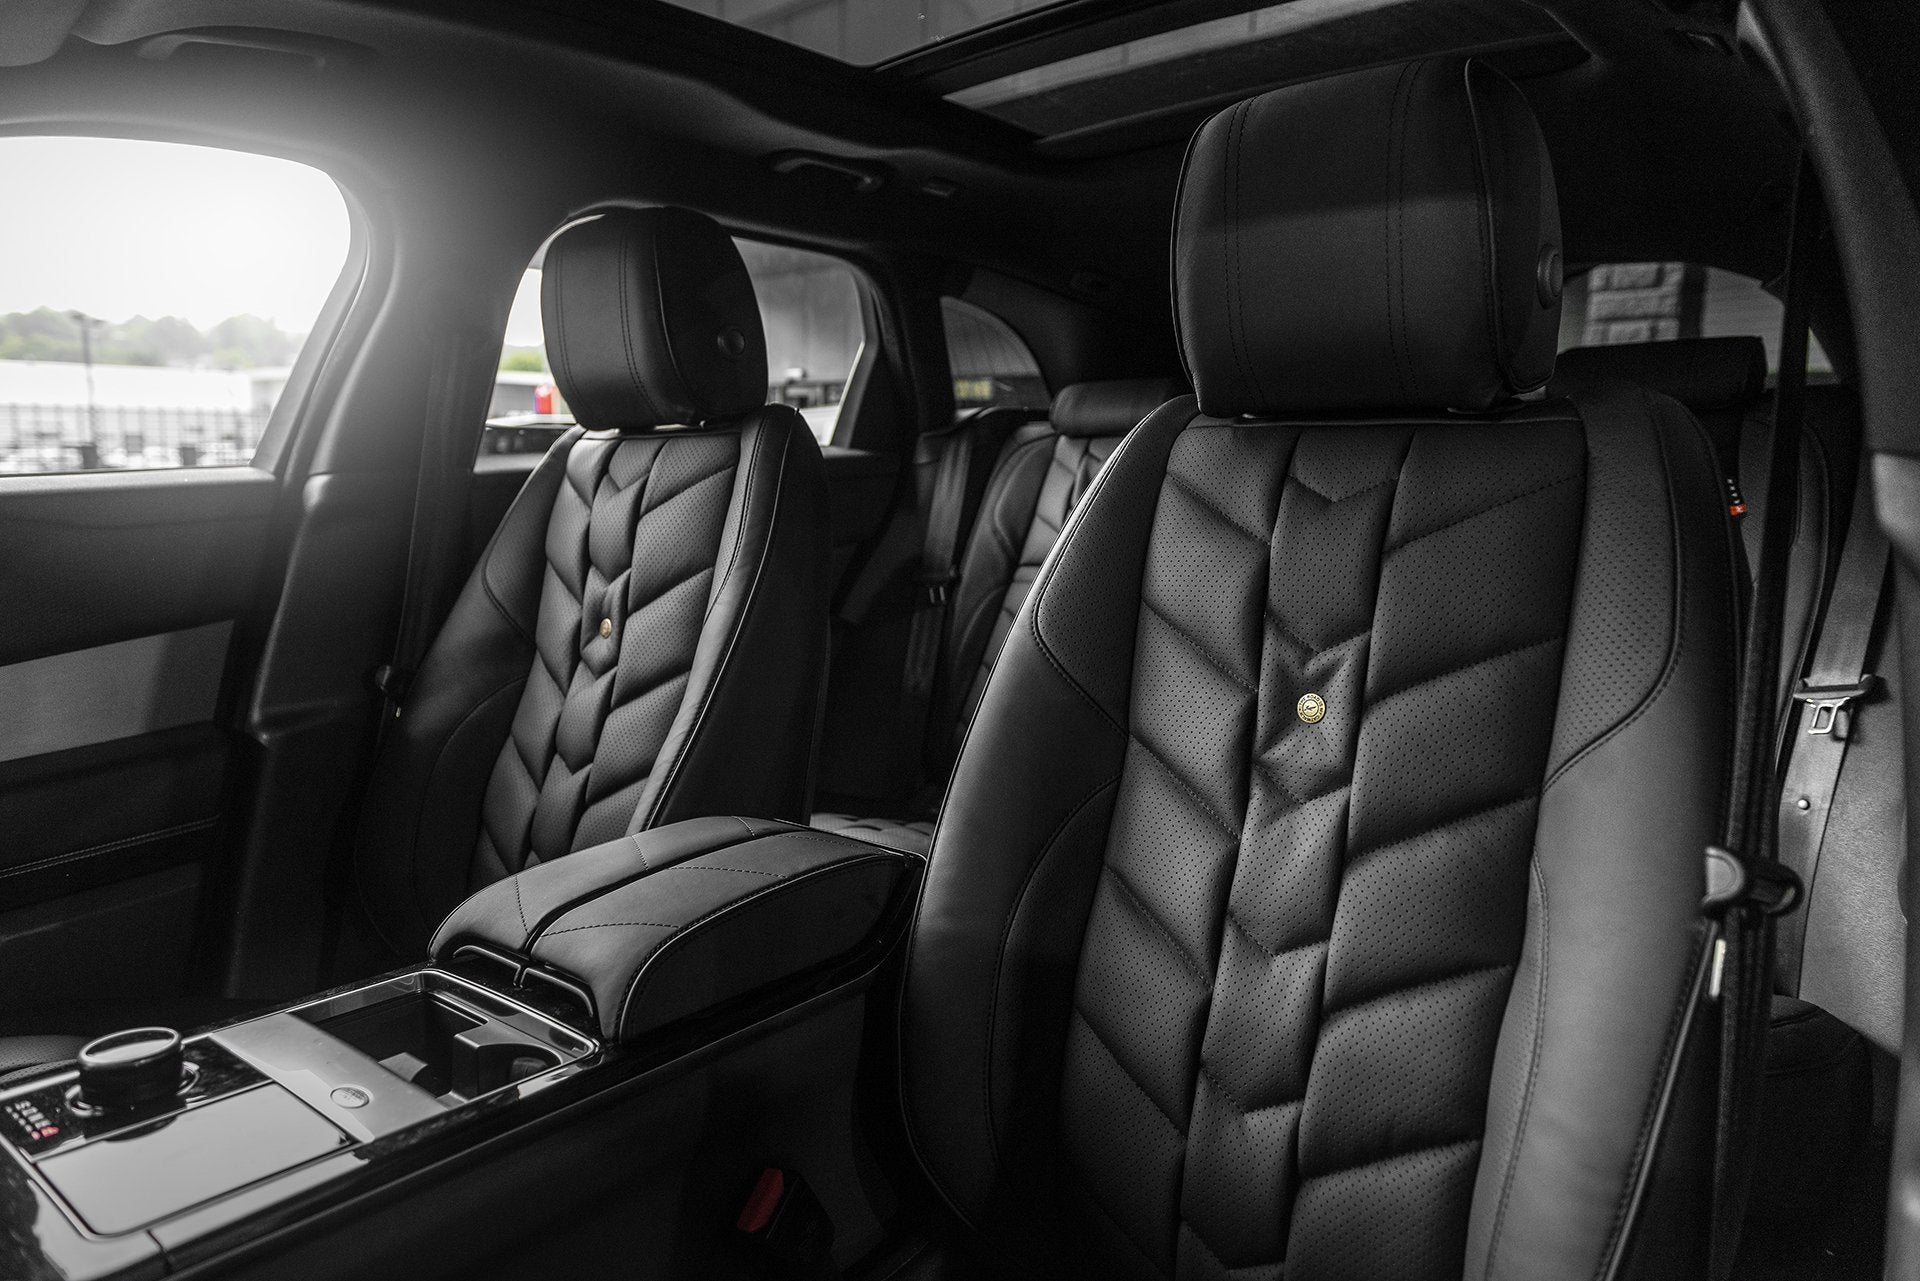 Range Rover Velar (2017-Present) Leather Interior by Kahn - Image 1697